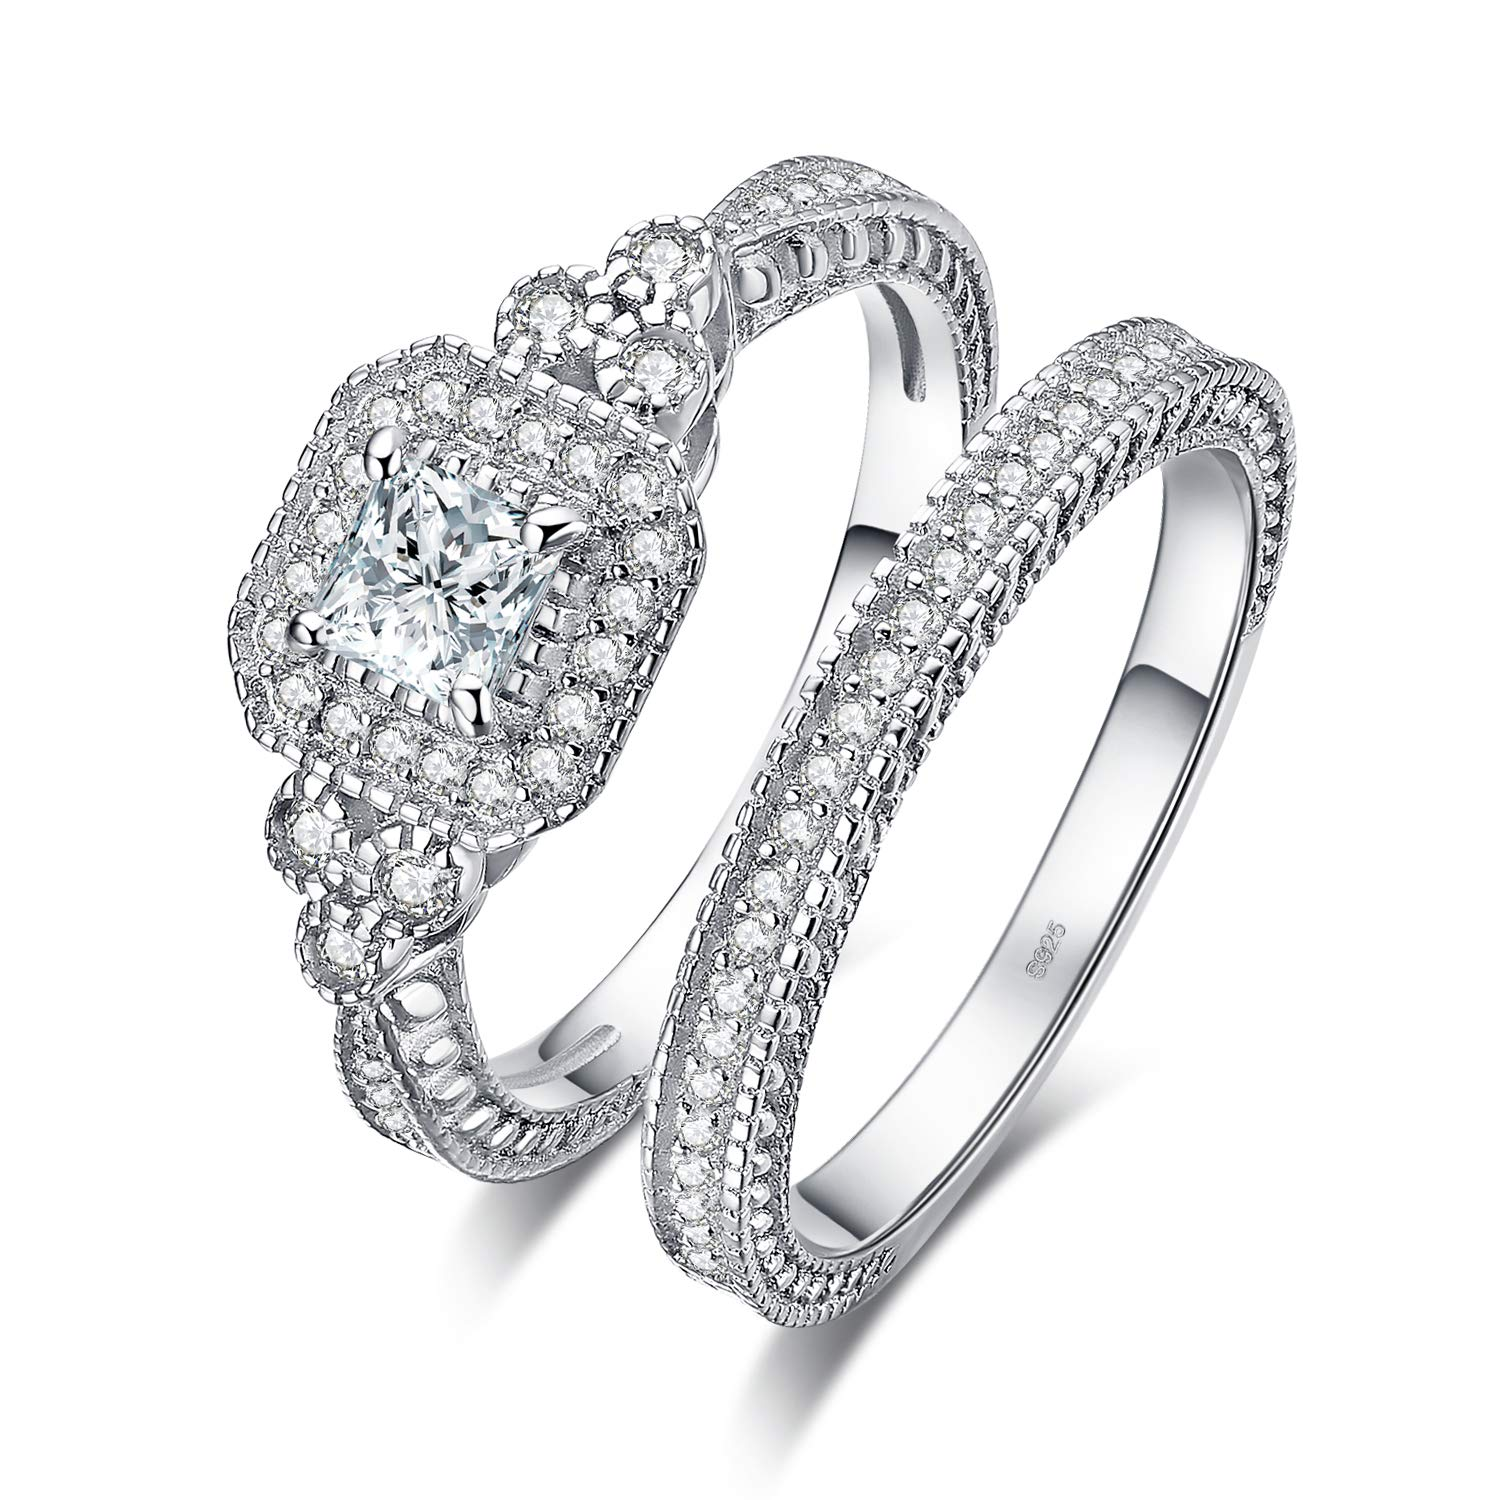 JewelryPalace 0.3ct 1ct 2ct Princess Cut Cubic Zirconia Engagement Rings For Women Anniversary Promise Wedding Band Bridal Sets 925 Sterling Silver Ring Size 4-12